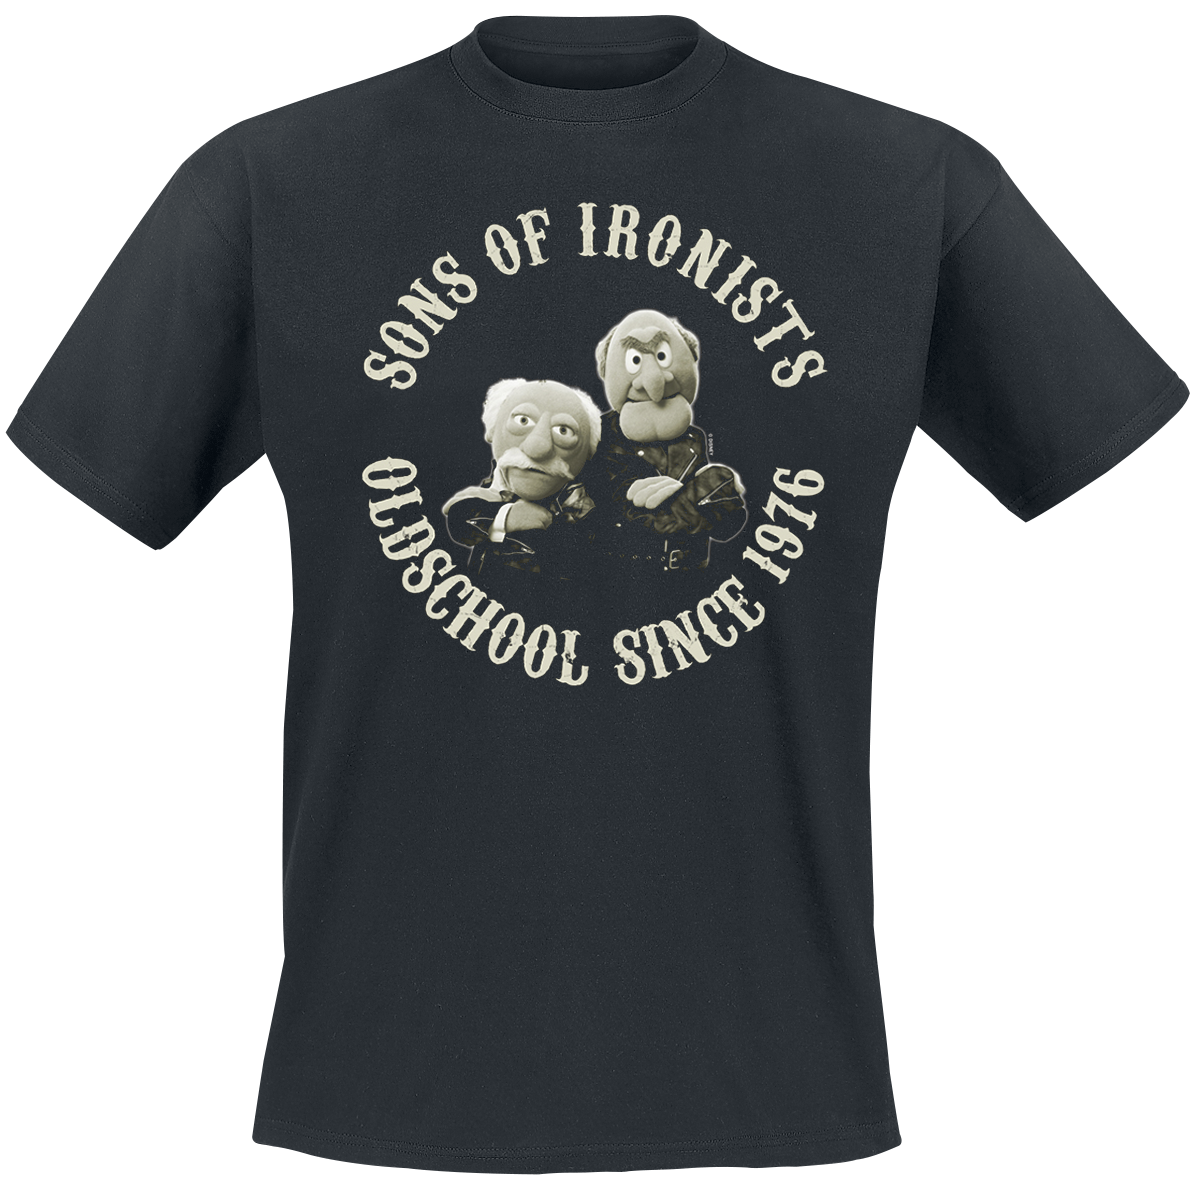 The Muppets - Sons Of Ironists - T-Shirt - black